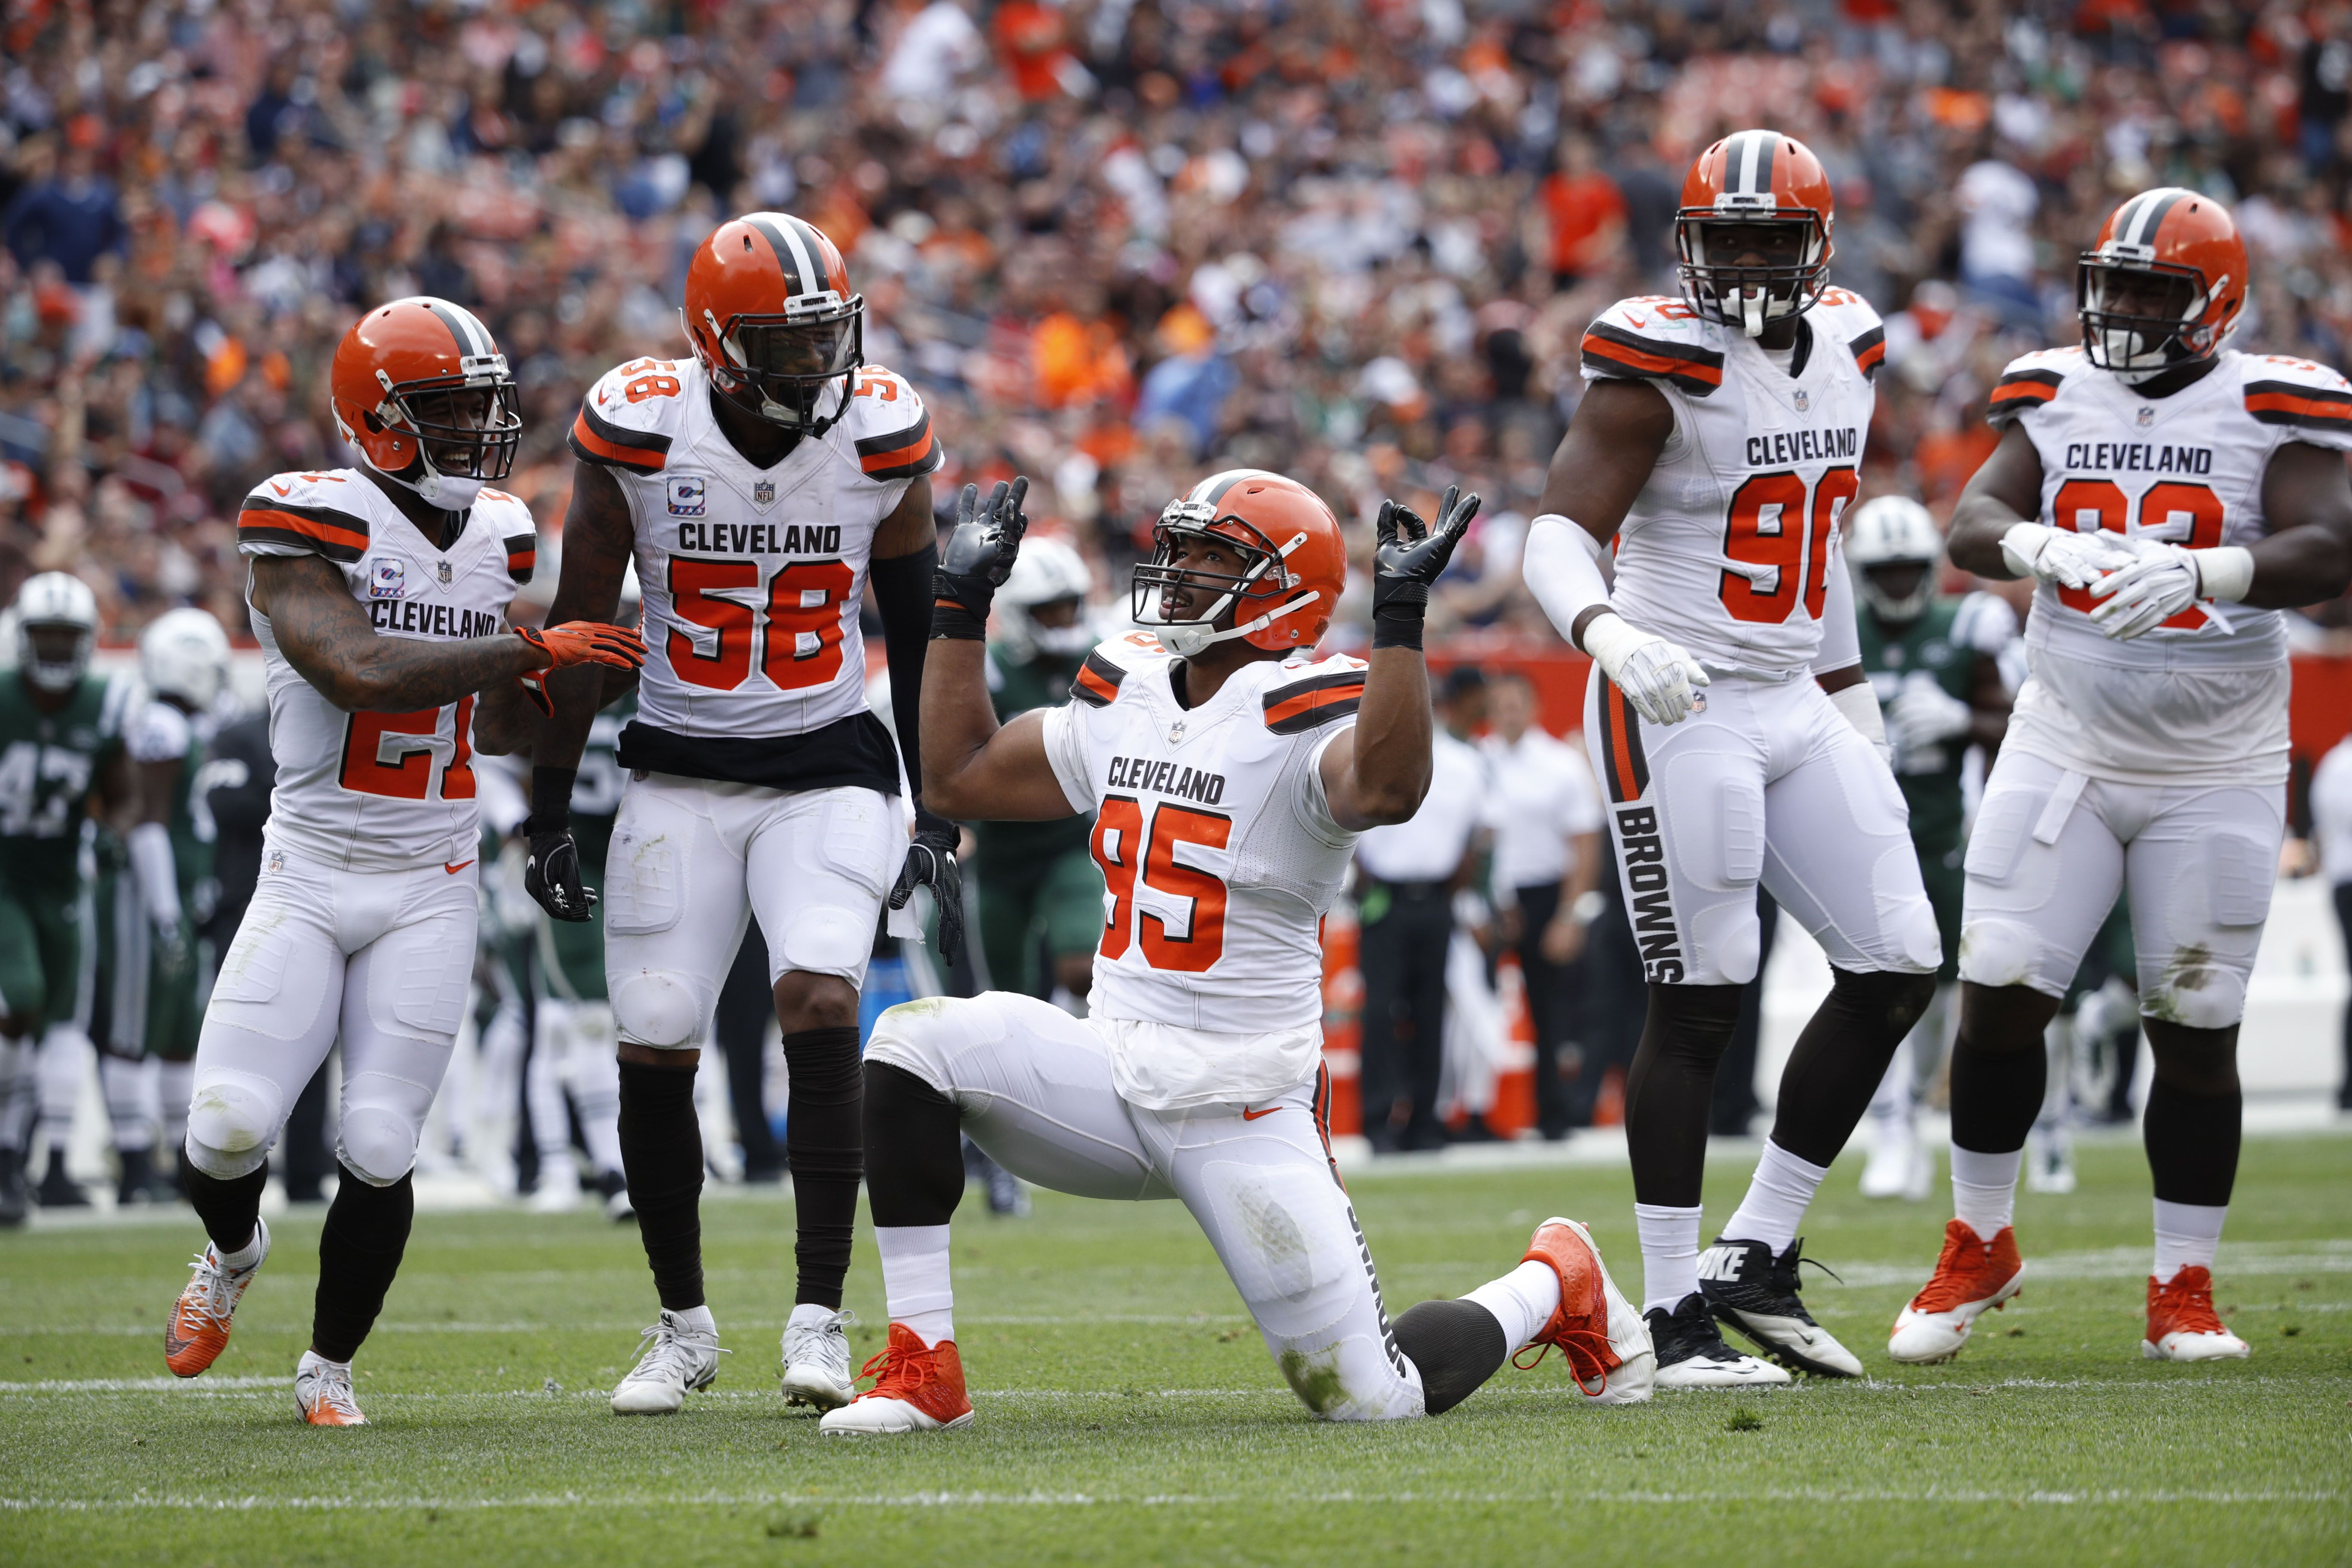 Cleveland Browns rush defense shows up